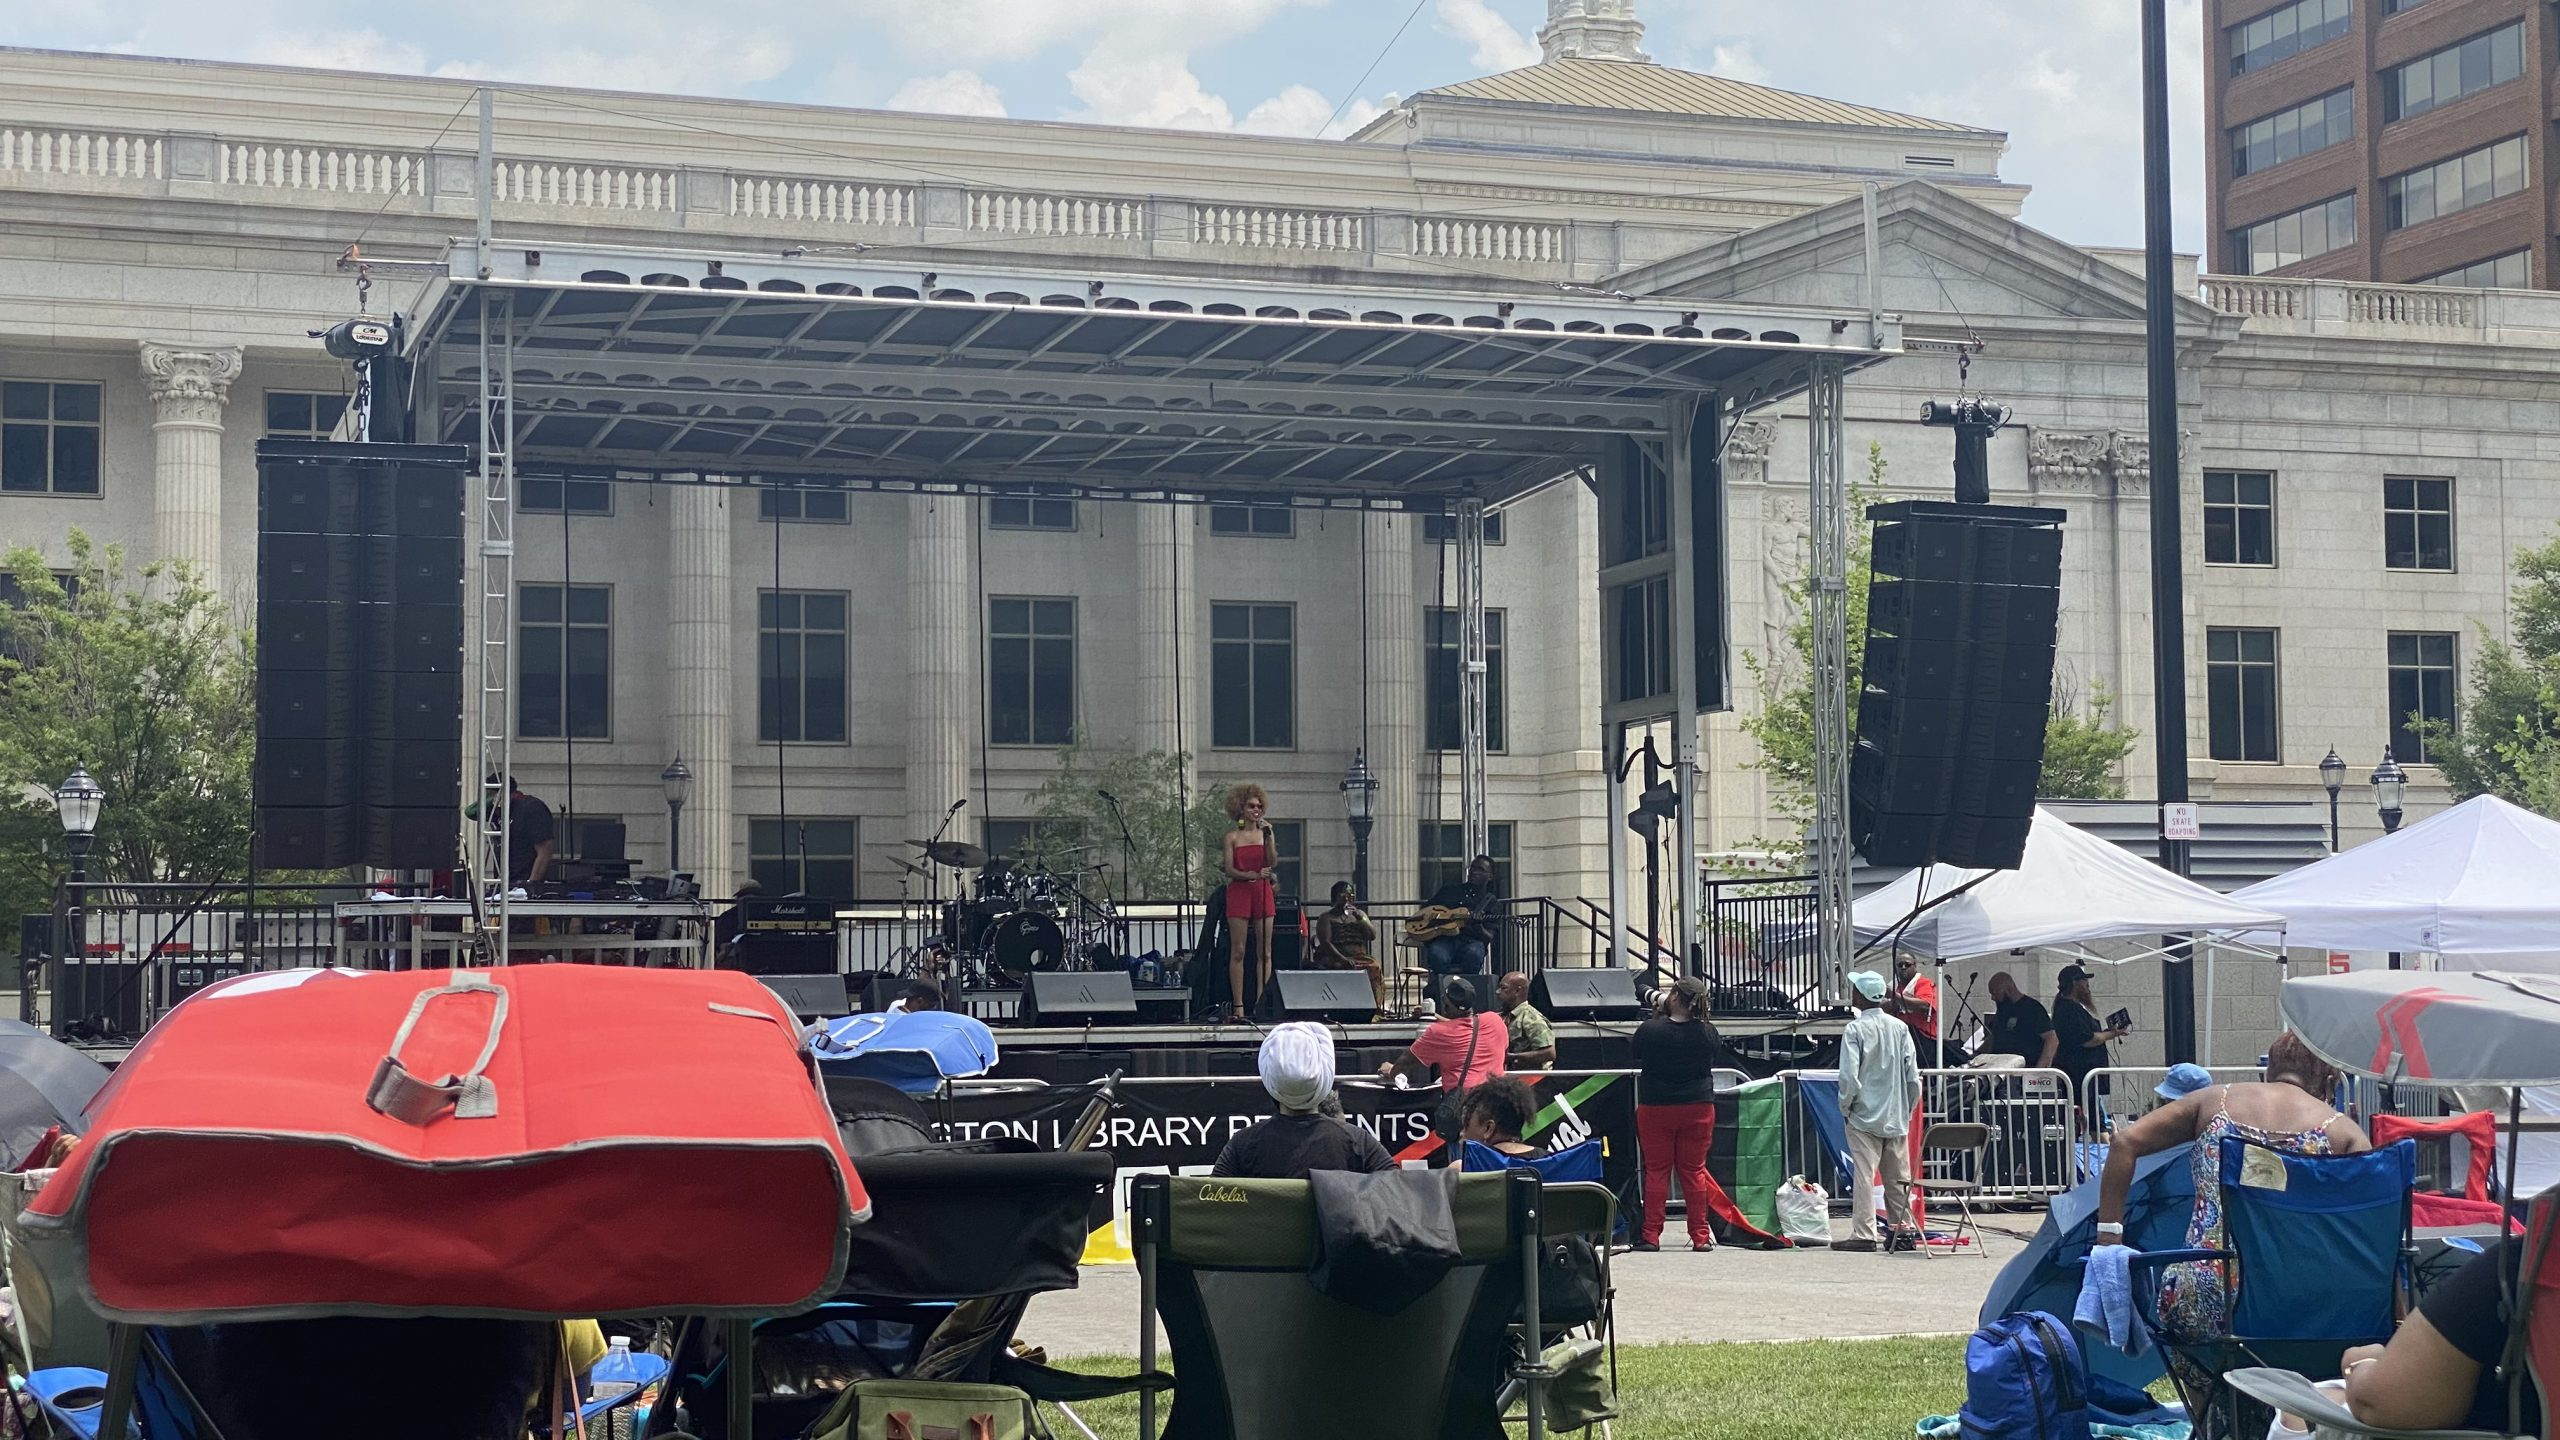 Live performance at the 1st Annual Juneteenth Festival at Rodney Square